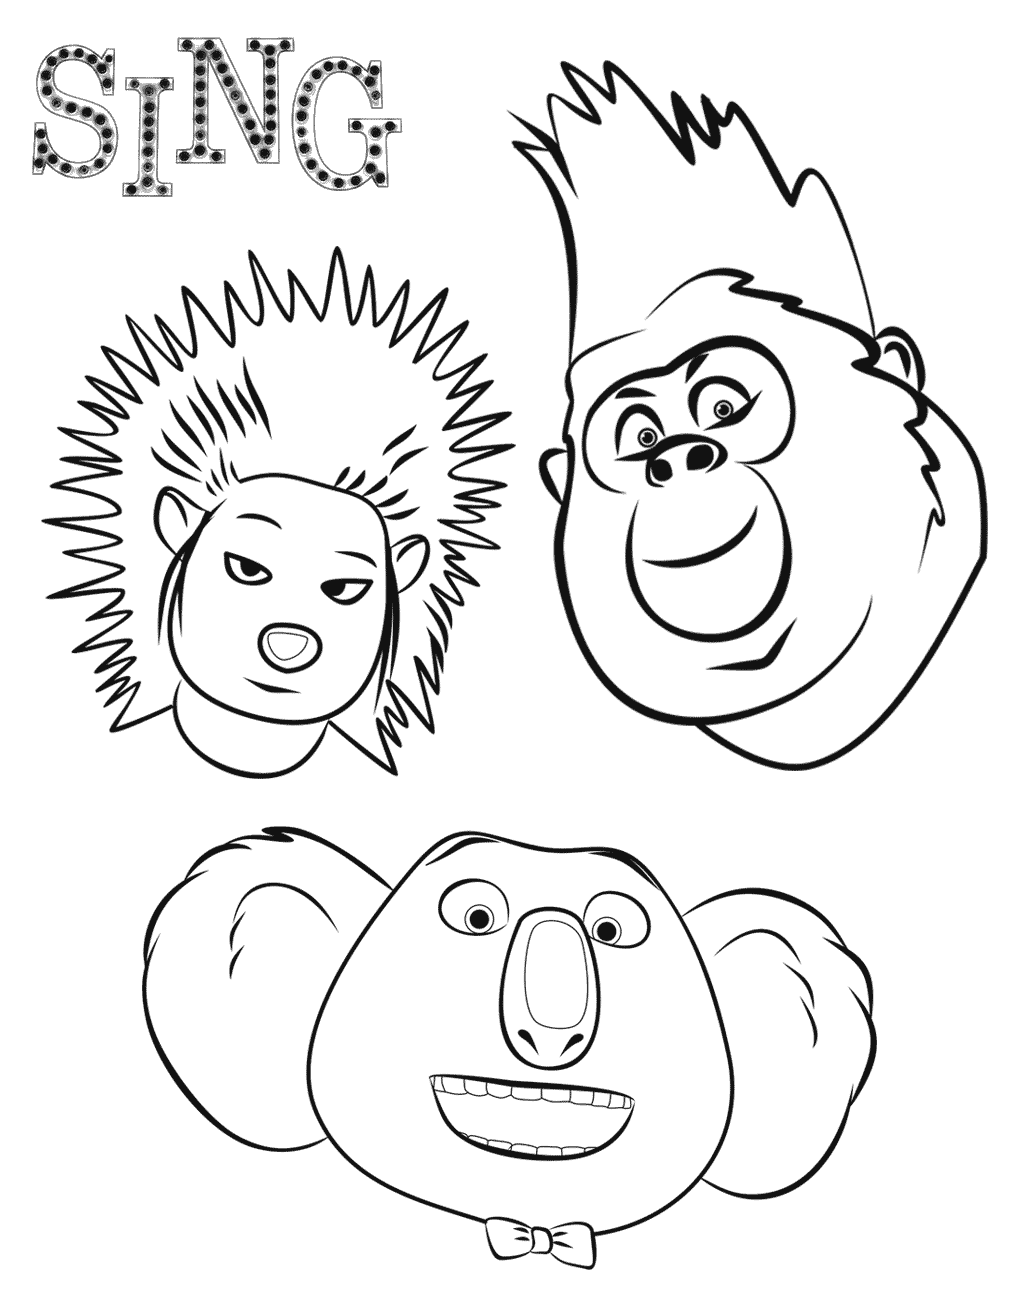 free colouring pages sing sing to color for kids sing kids coloring pages sing free pages colouring